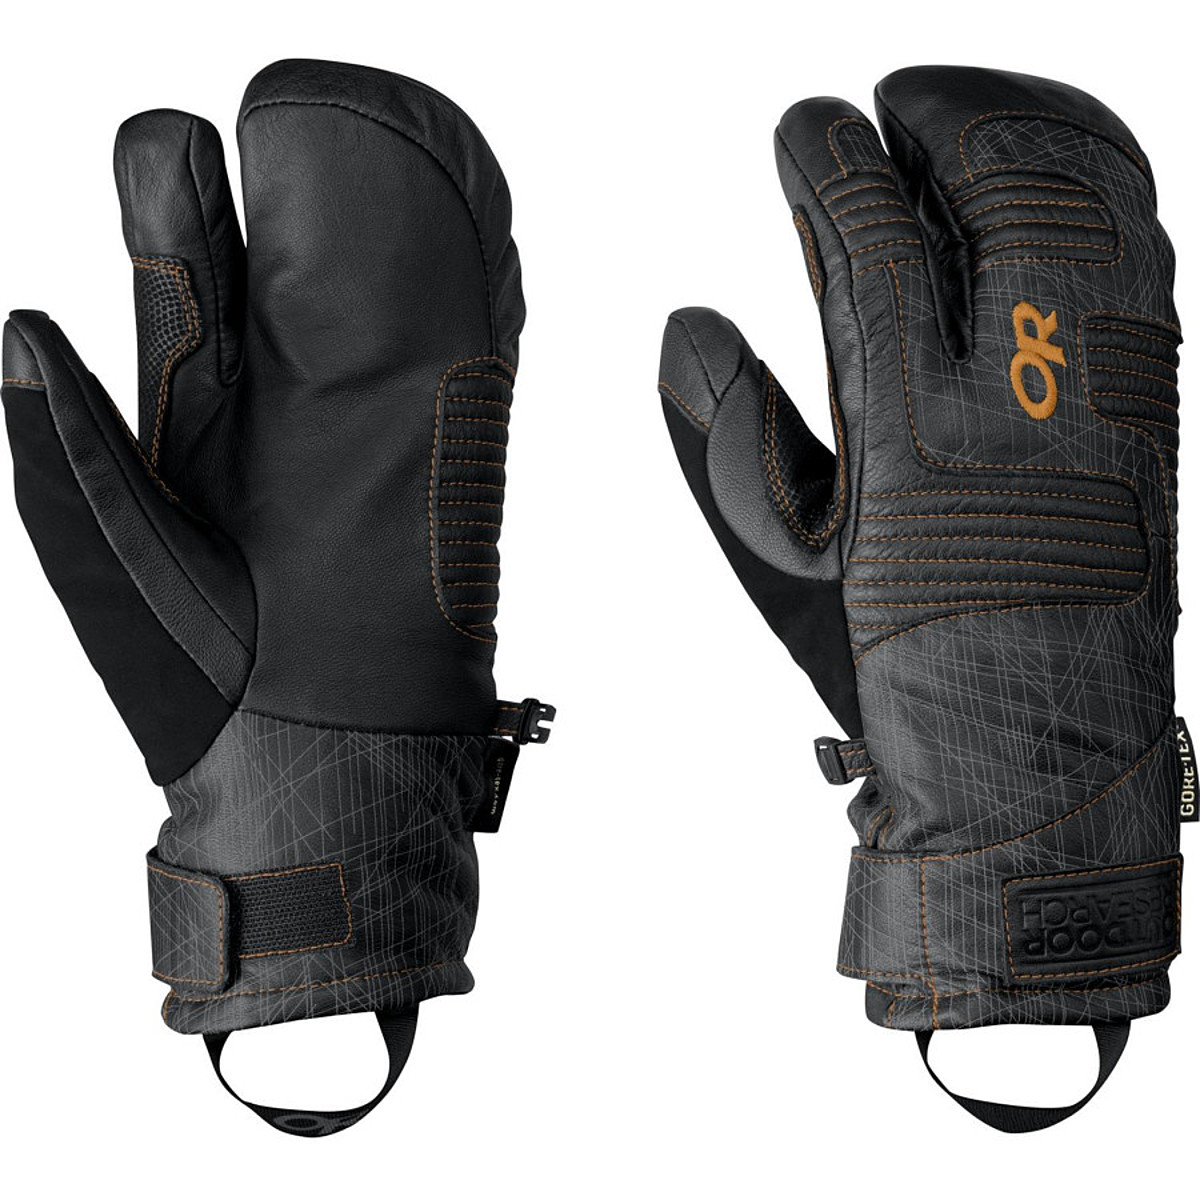 Outdoor Research Point 'n Chute 3-Finger Gloves